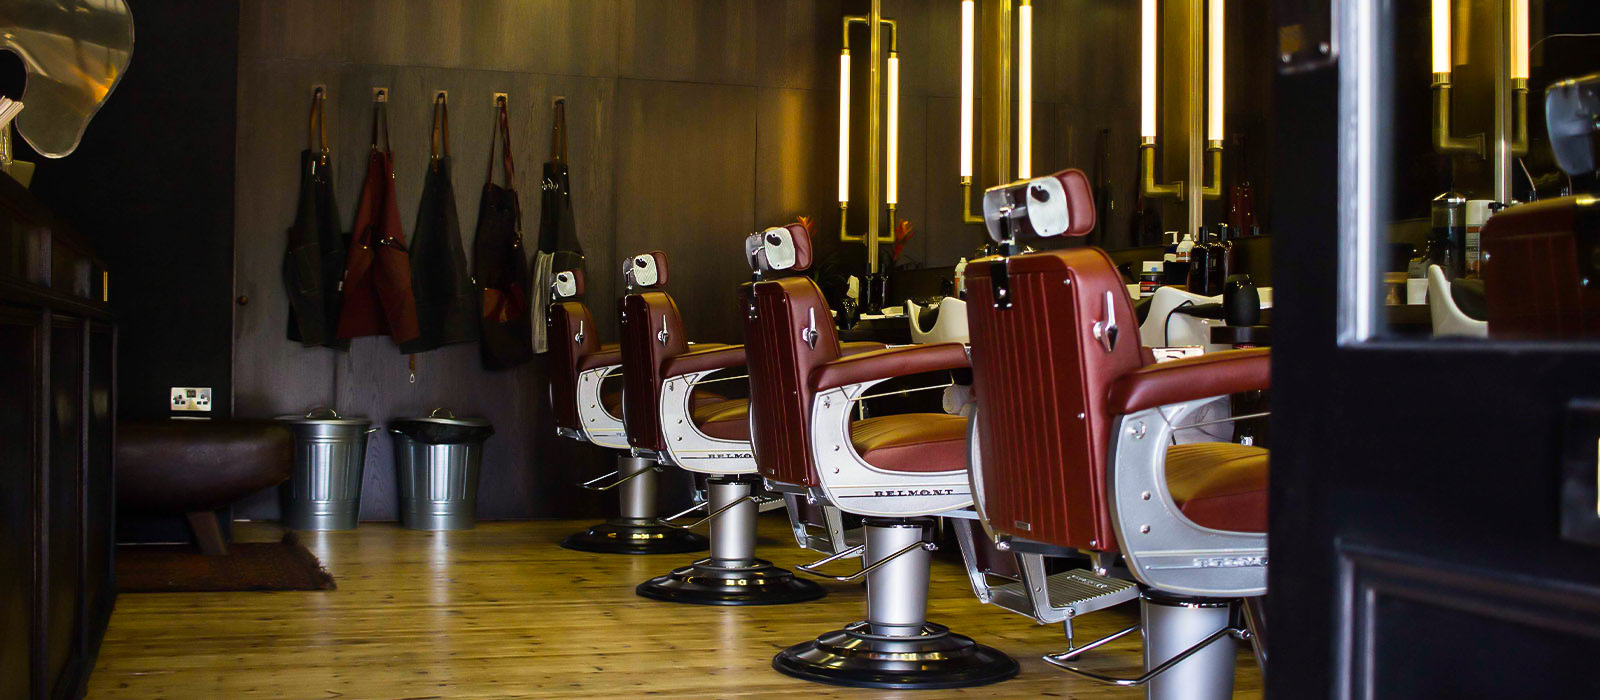 https://www.portersbarbers.co.uk/wp-content/uploads/East-Dulwich-Porters-Barbers-Interior-1-2.jpg